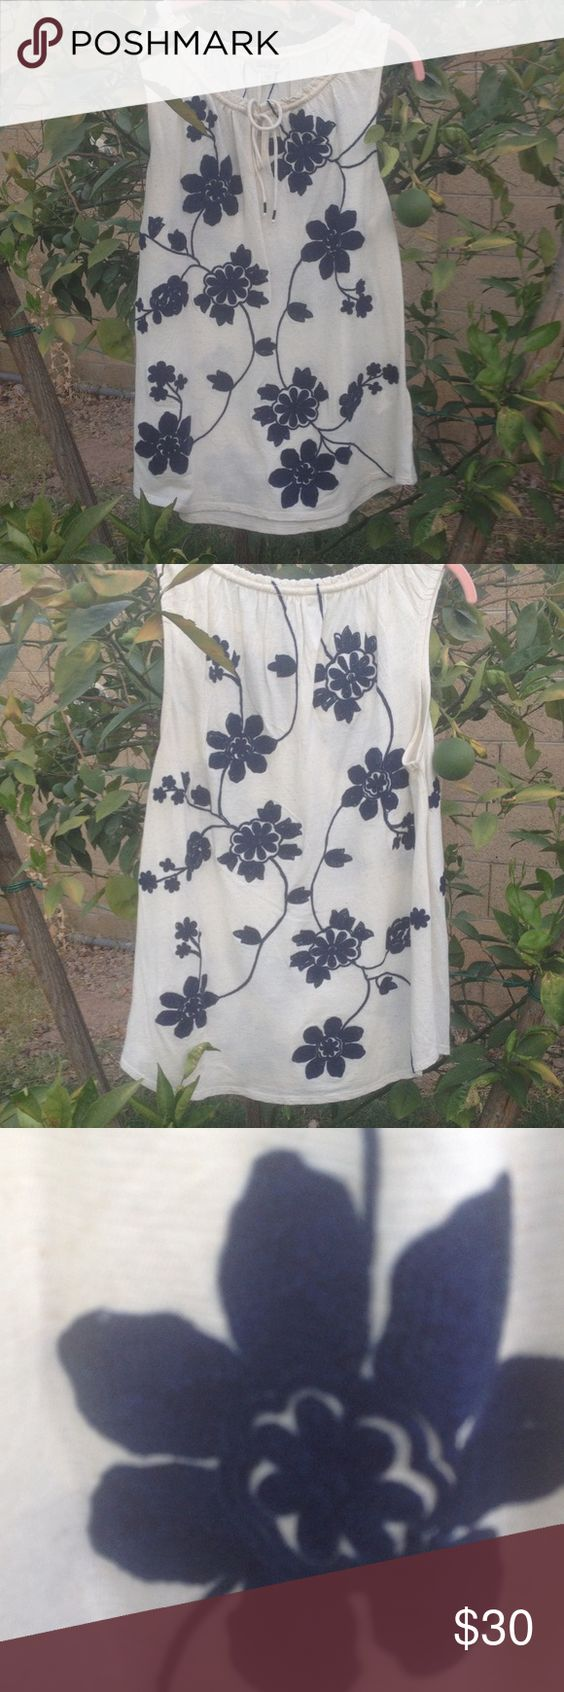 Lucky Brand sleeveless top NWT Lucky brand sleeveless top cream color with navy Blue embroidered flowers 66% cotton 28% viscose 6% linen embroidery is 100% acrylic NWT Lucky Brand Tops